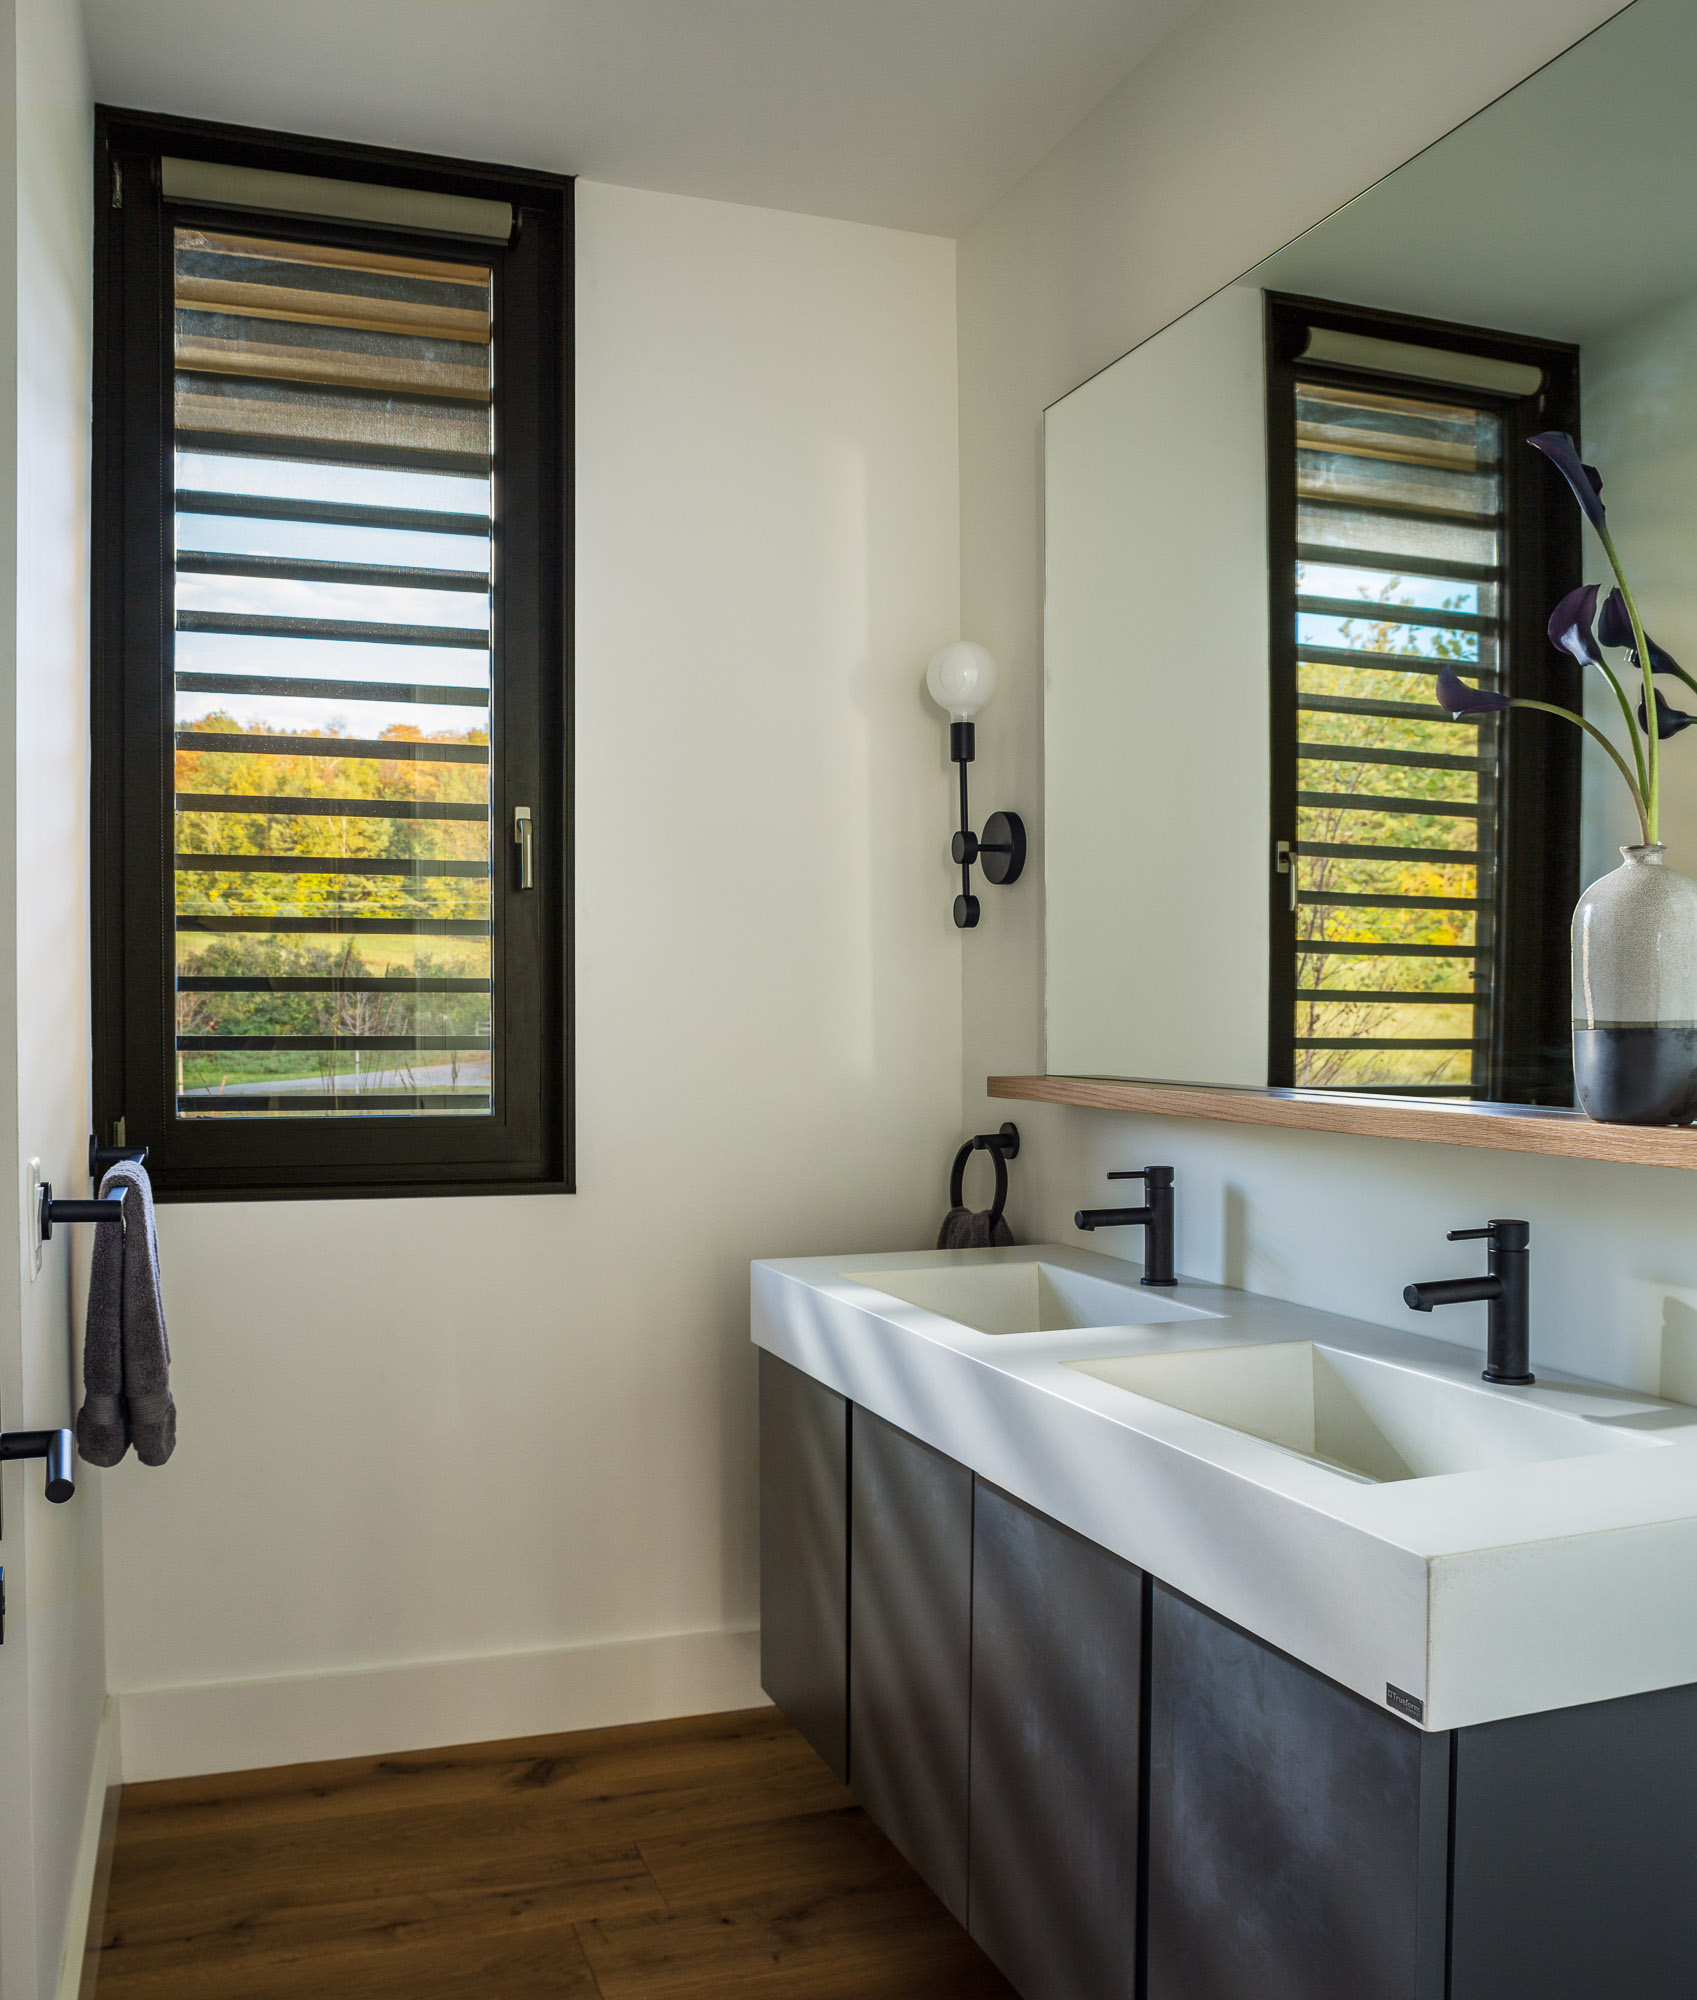 A modern bathroom with a double vanity and a large mirror, matte black light fixtures, and a louver window.